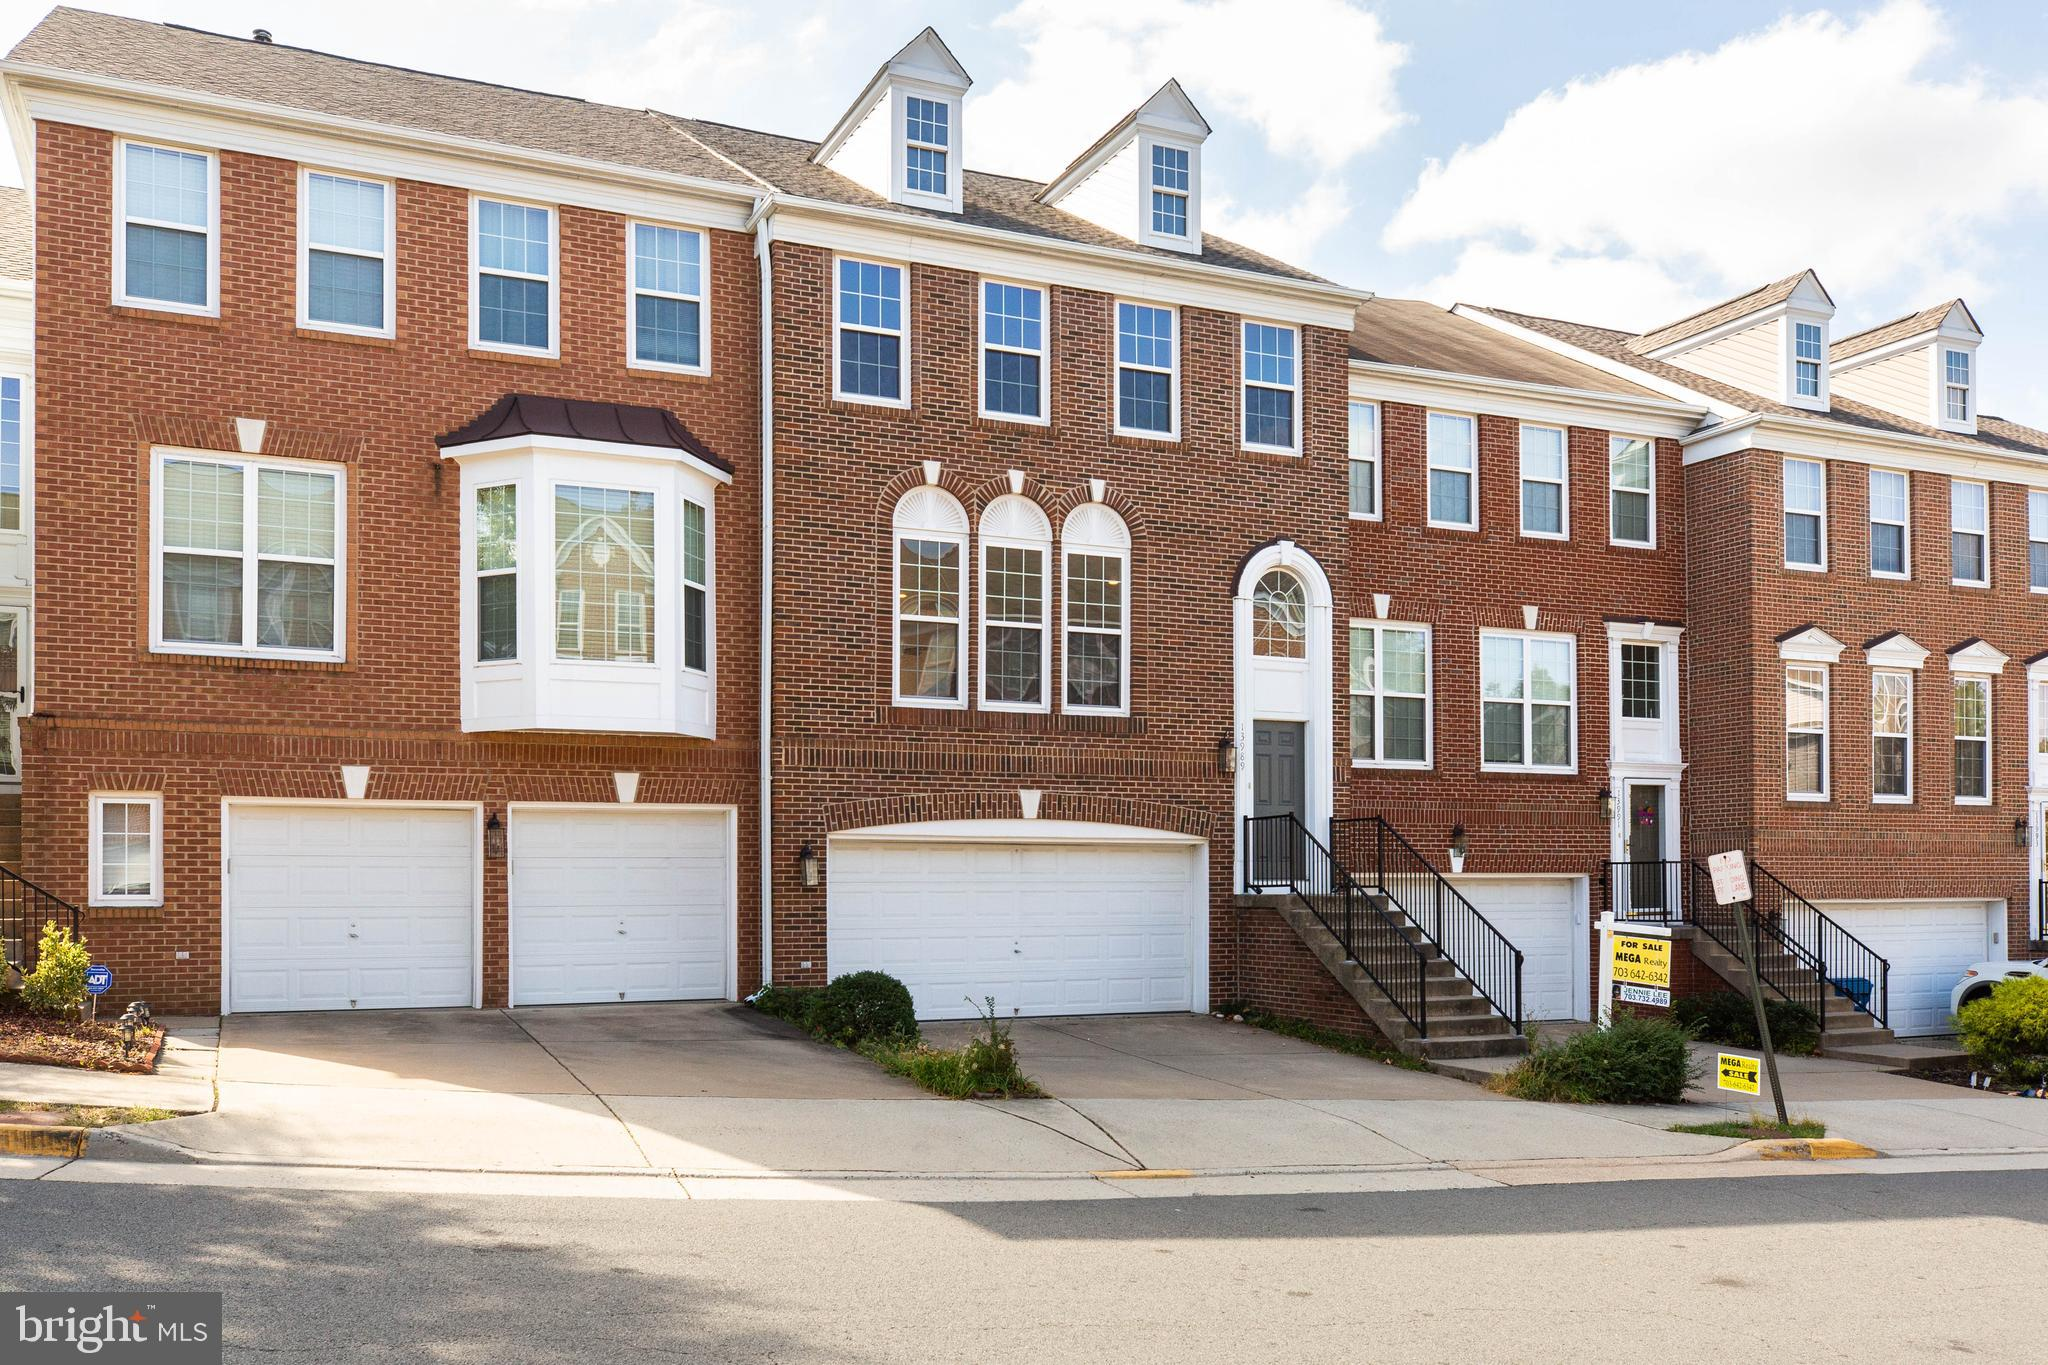 13989 TANNERS HOUSE WAY, CENTREVILLE, VA 20121